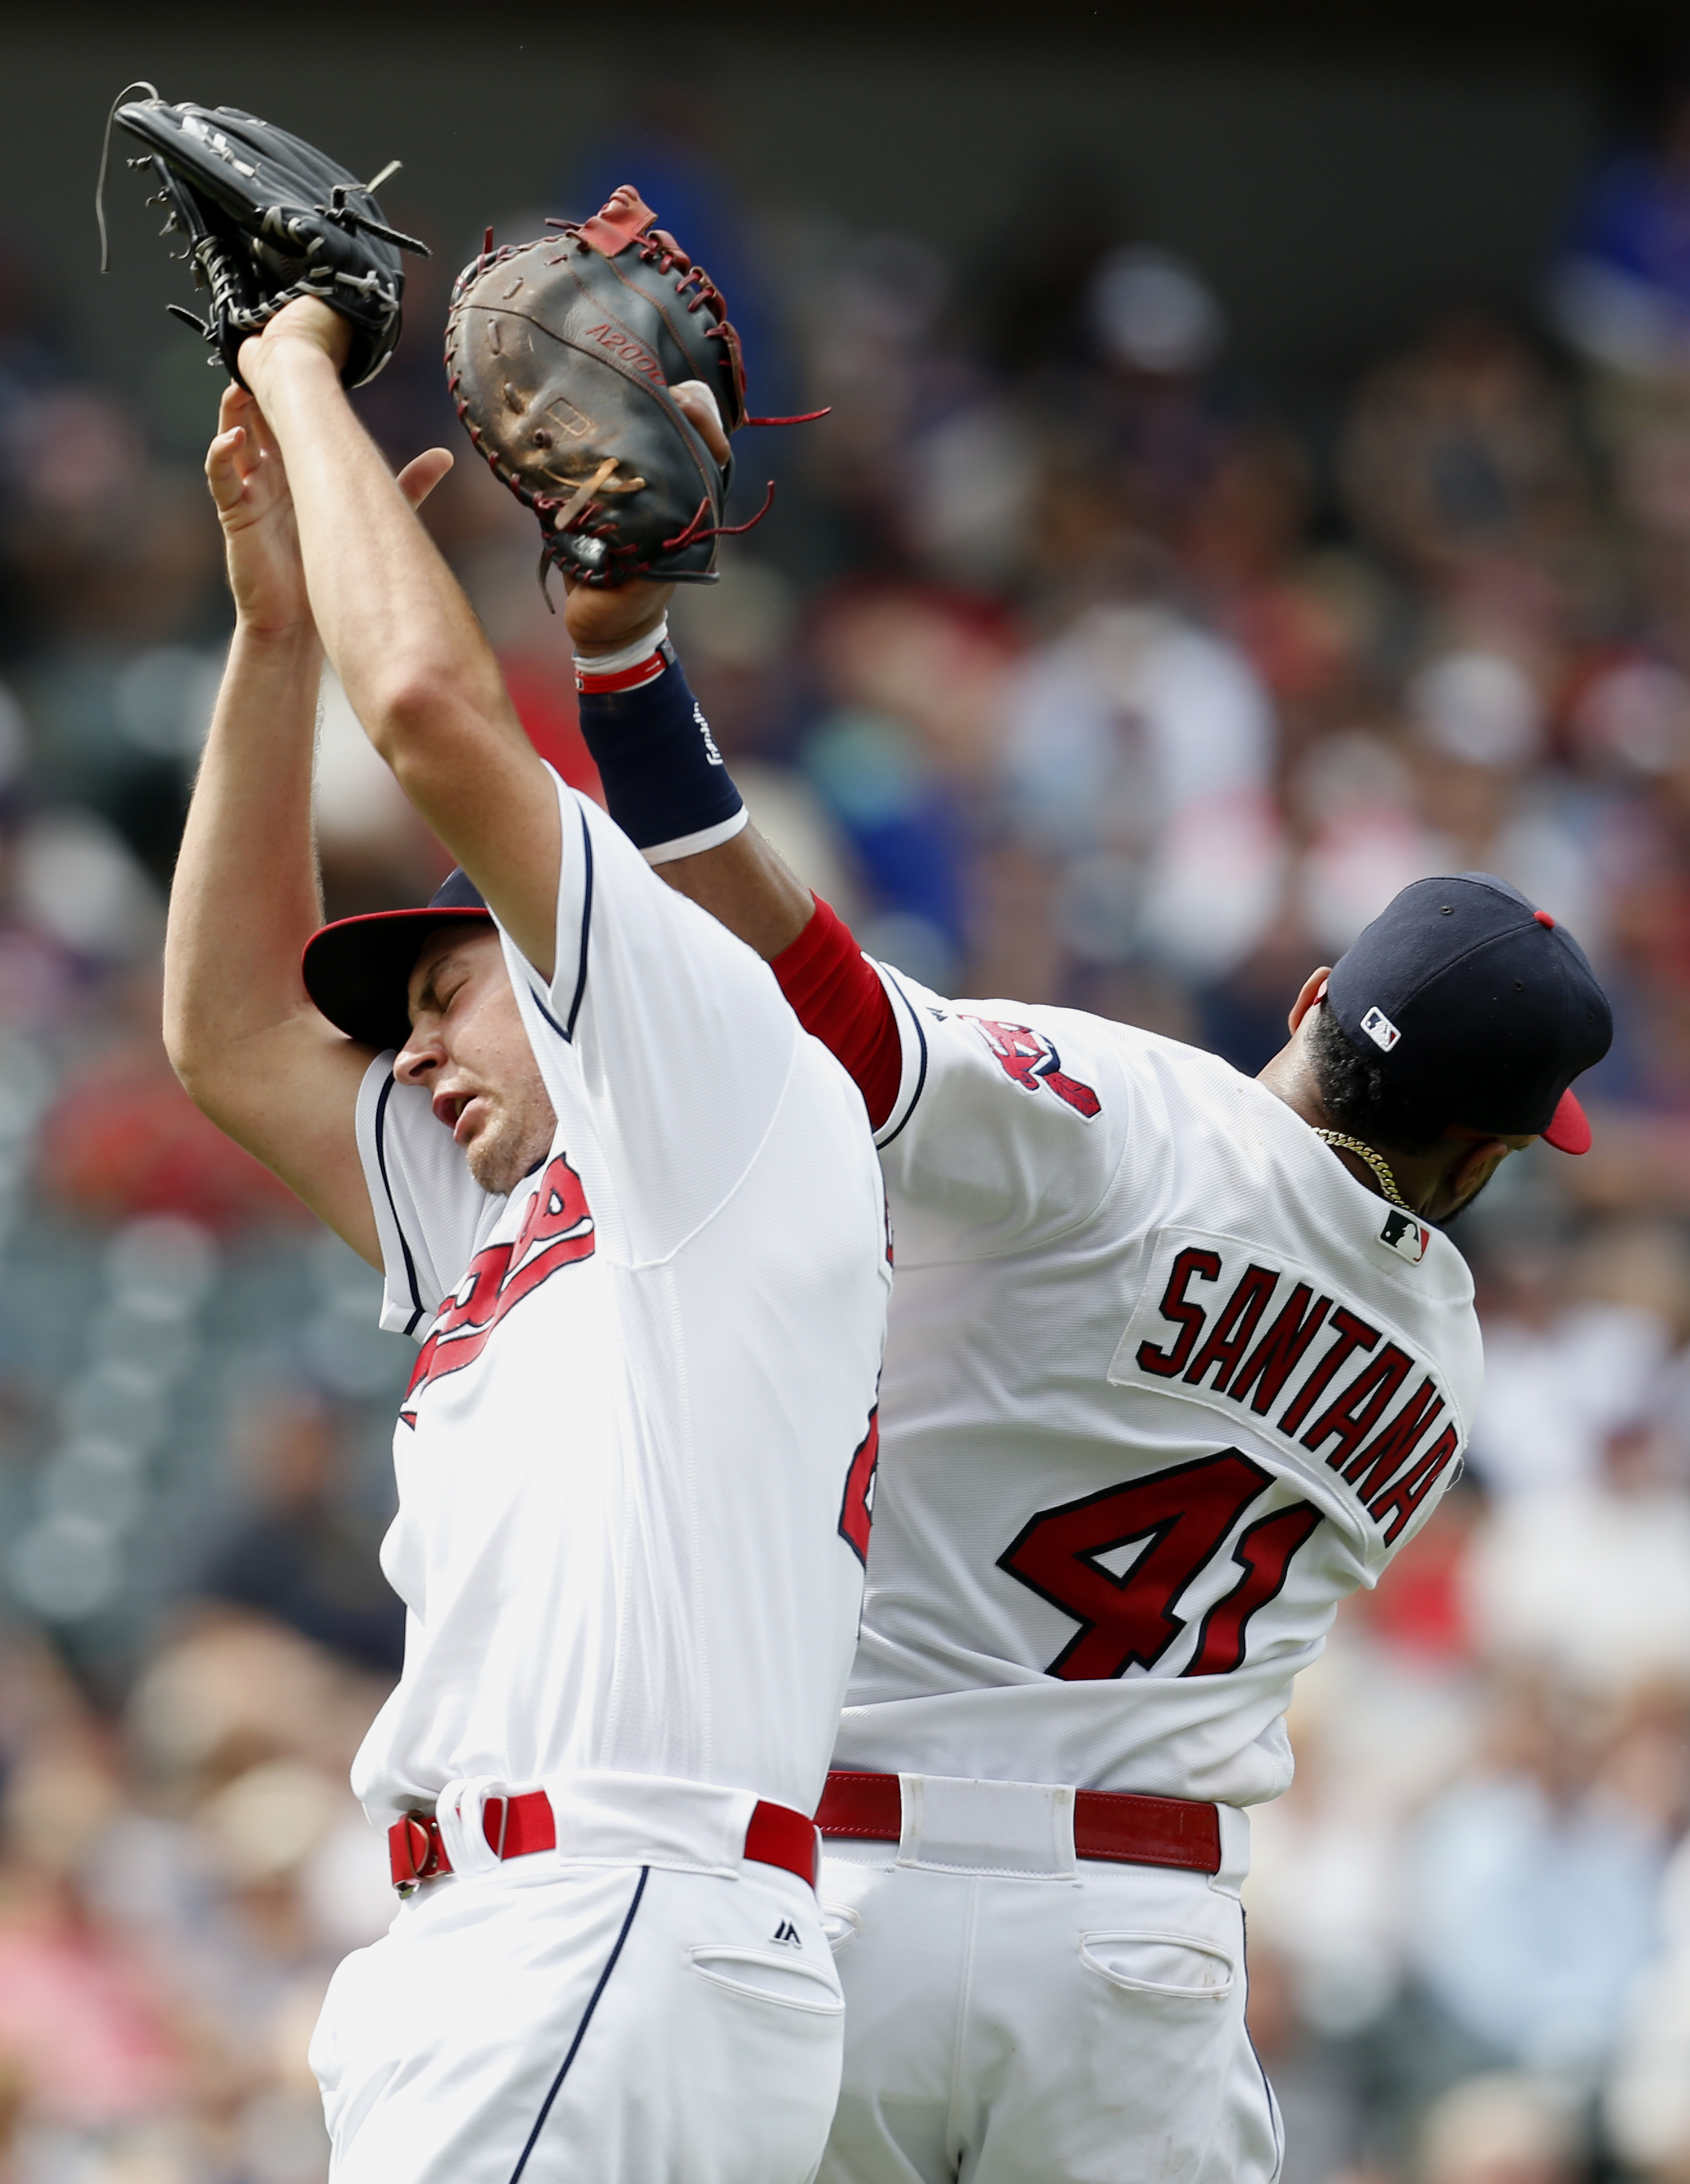 Cleveland Indians starting pitcher Trevor Bauer and Carlos Santana (41) collide on a pop out to the pitcher by Houston Astros' Jose Altuve during the fifth inning of a baseball game Thursday, Sept. 8, 2016, in Cleveland. (AP Photo/Ron Schwane)